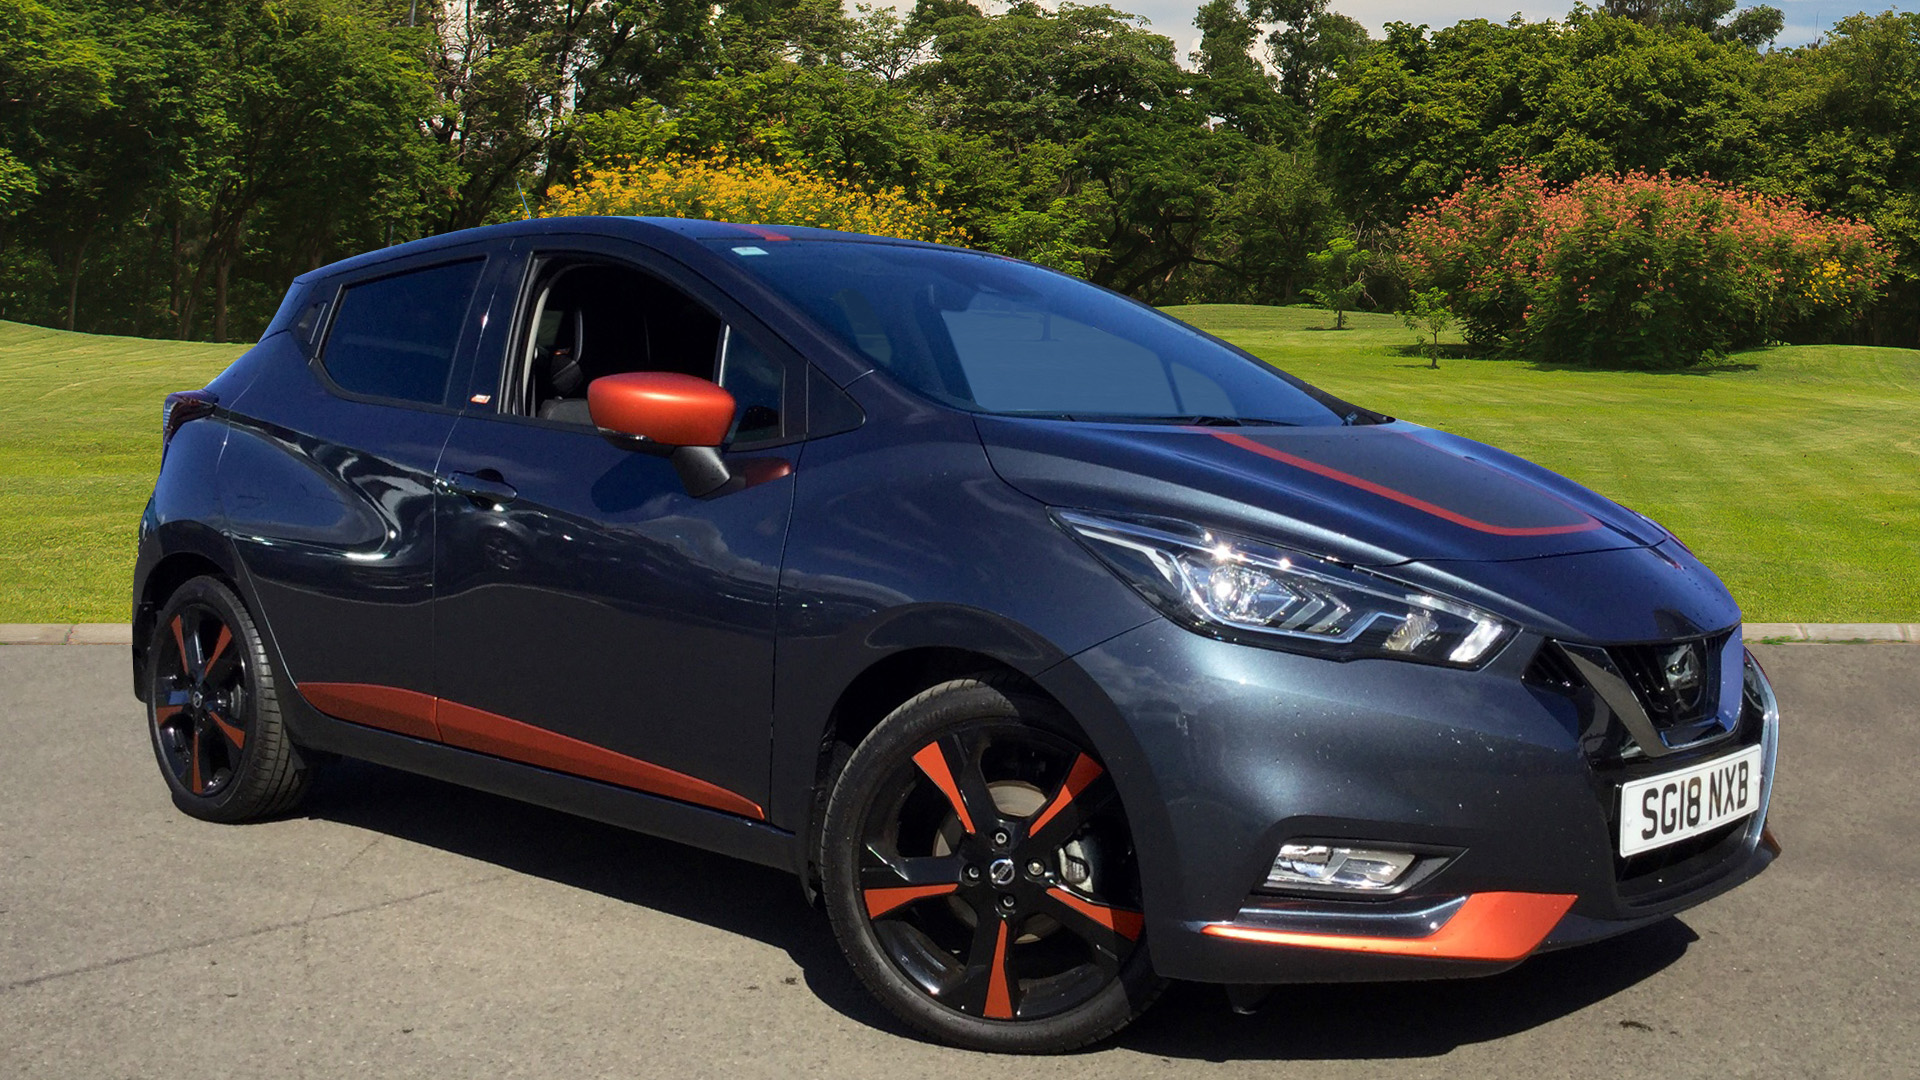 Car for Sale Scotland Lovely Used Cars Scotland Find Cars for Sale In Scotland at Motors